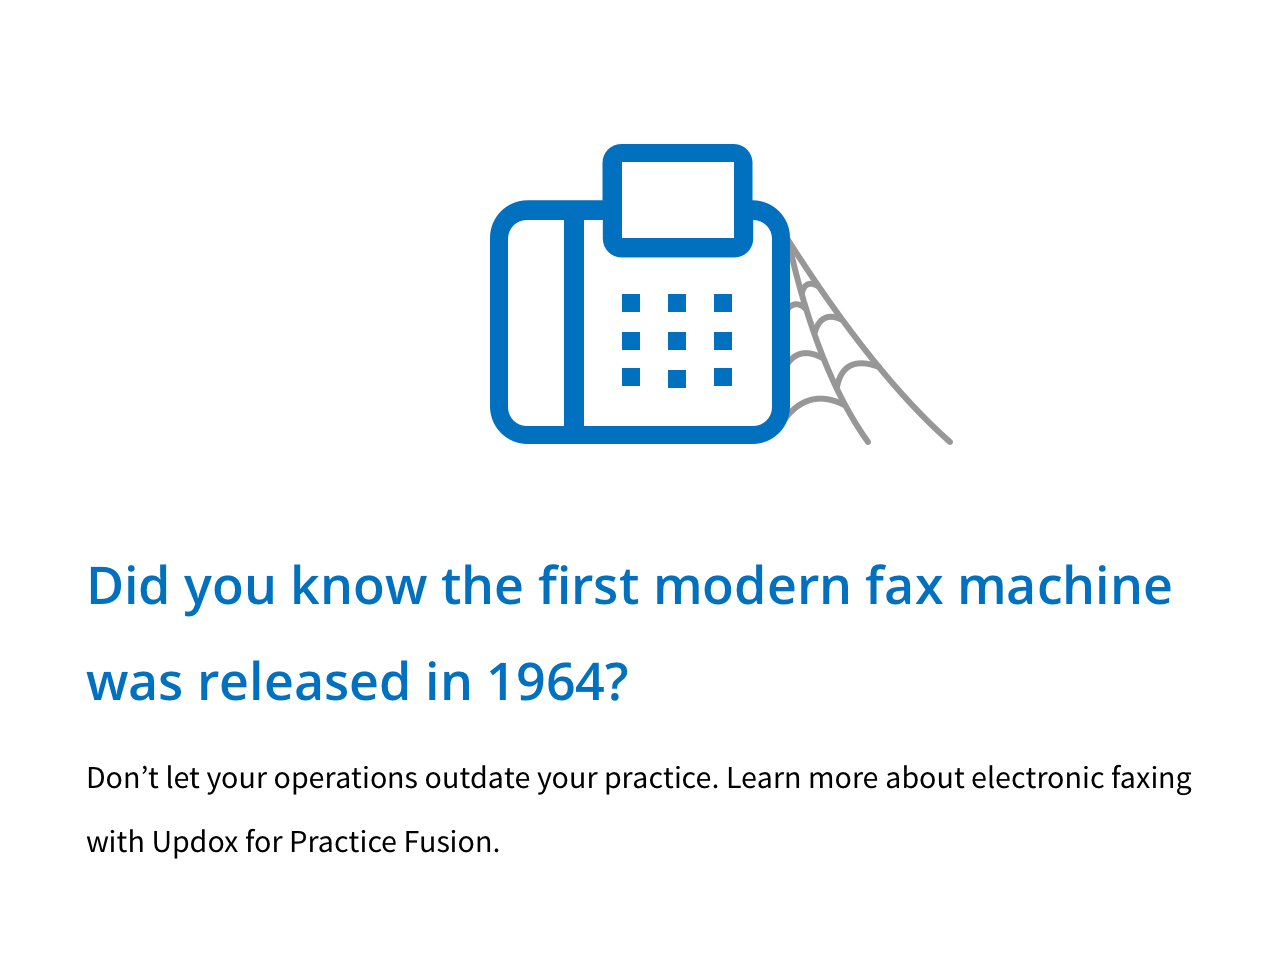 Did you know the first modern fax machine was release in 1964? Don't let your operations outdate your practice. Learn more about electronic faxing with Updox for Practice Fusion